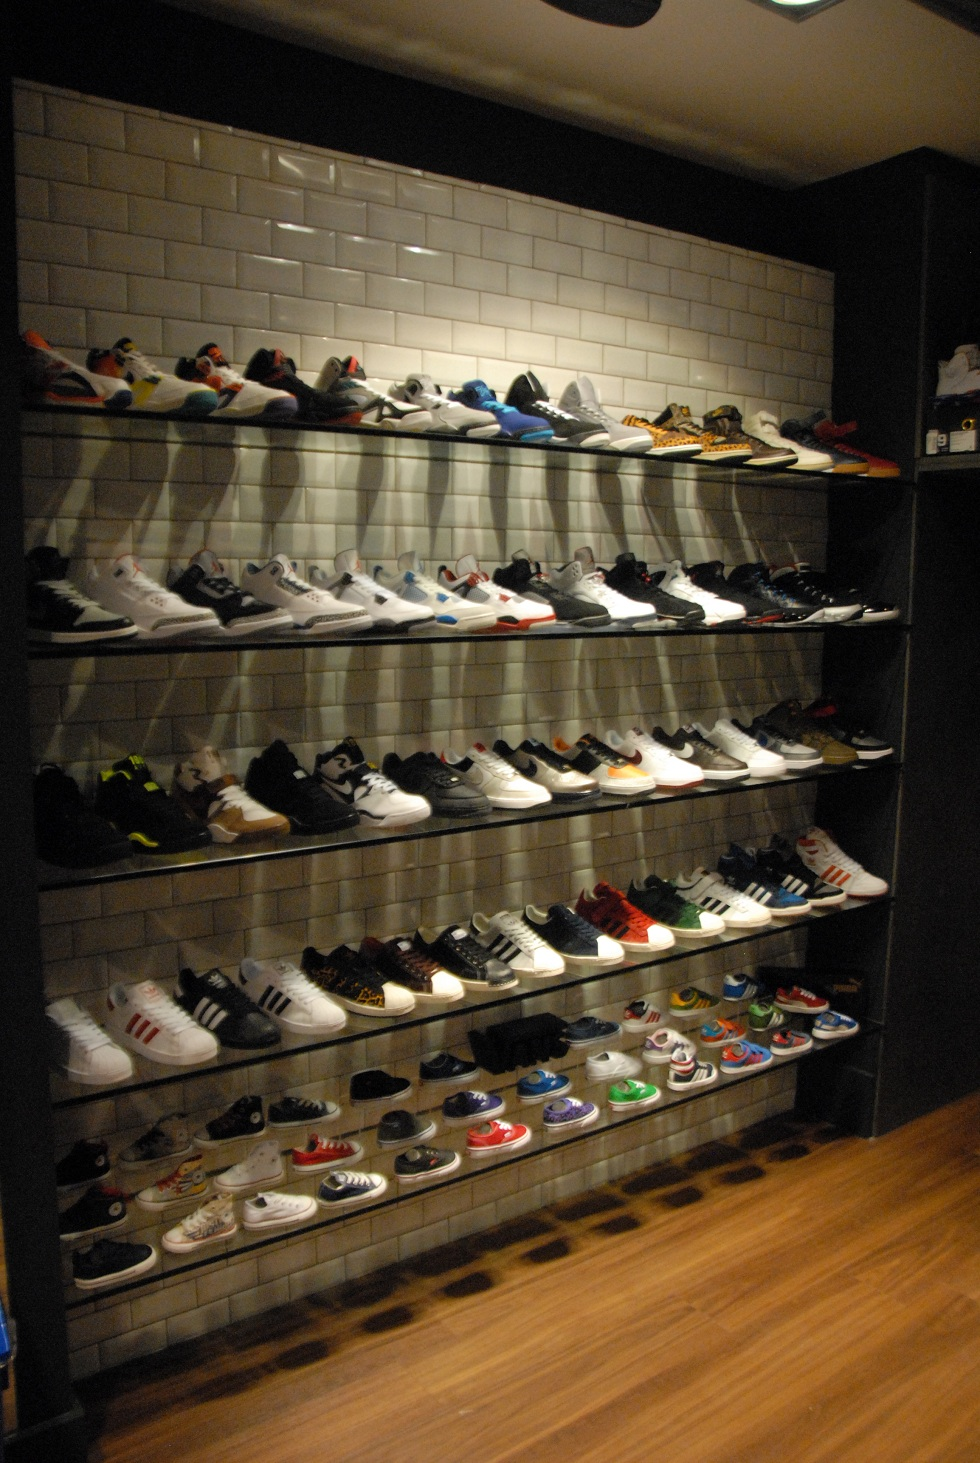 Magasin new balance chatelet - Magasin deco chatelet ...